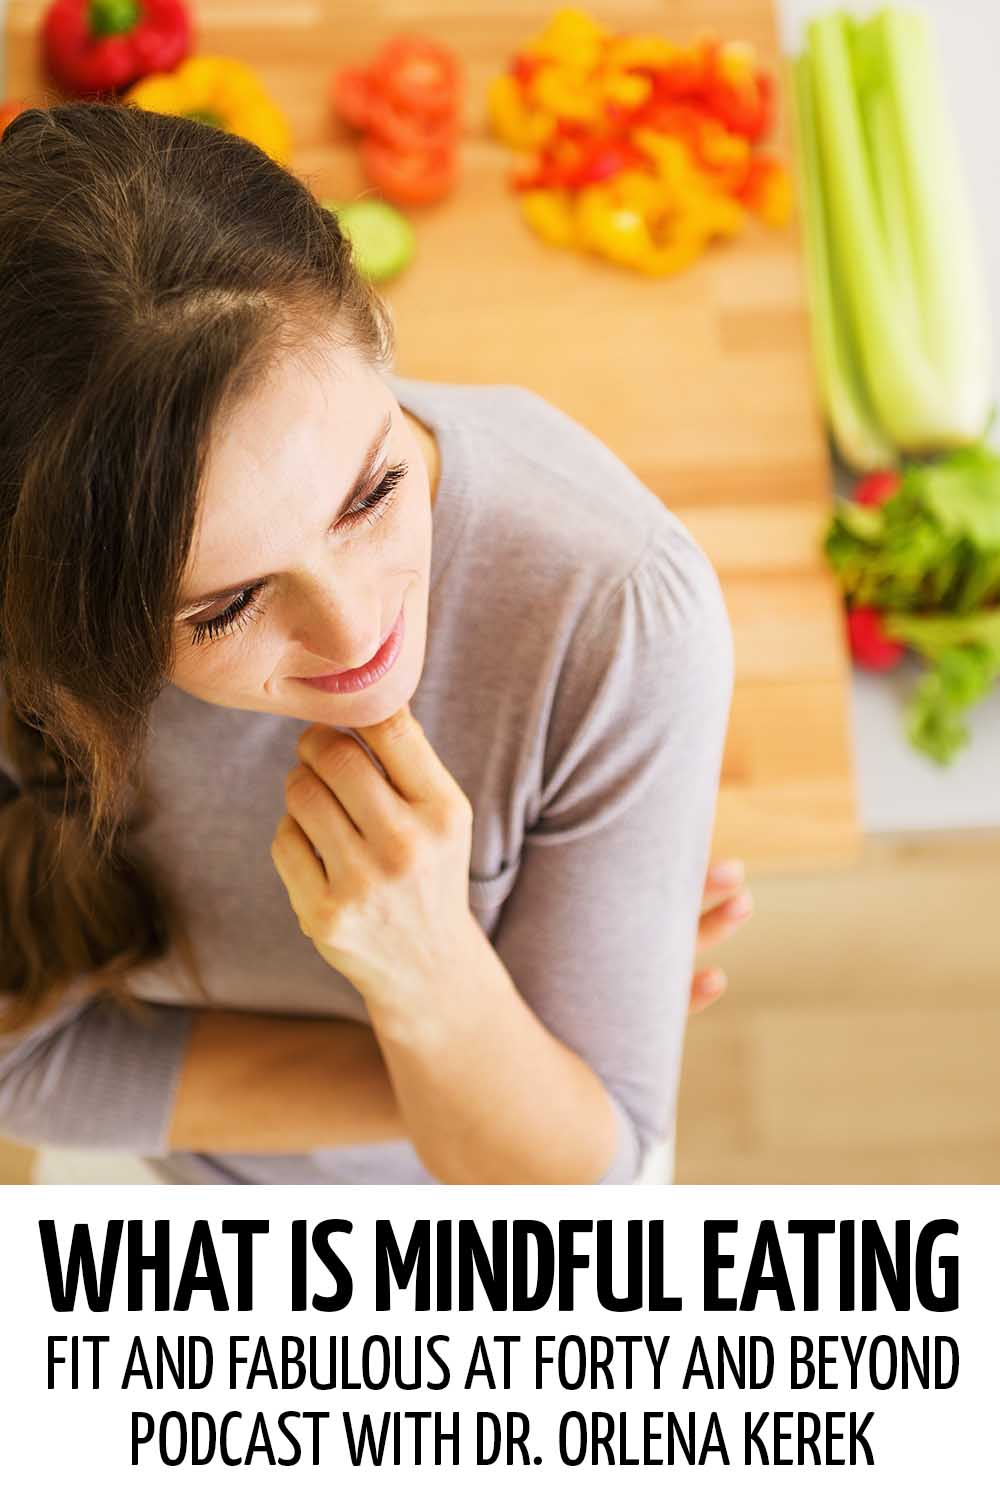 A woman thinking about what to eat for her next meal #healthy #healthylife #healthyliving #healthylifetips #healthylivingtips #healthylivingmotivation #lifestyle #healthylifestyle #positivity #selfimprovement #weightloss #loseweight #mindfuleating #whatismindfuleating #mindfuleatingtips #mindfuleatingchallenge #mindfuleatingstress #mindfuleatinglosingweight #mindfuleatingexercise #mindfuleatingmantra